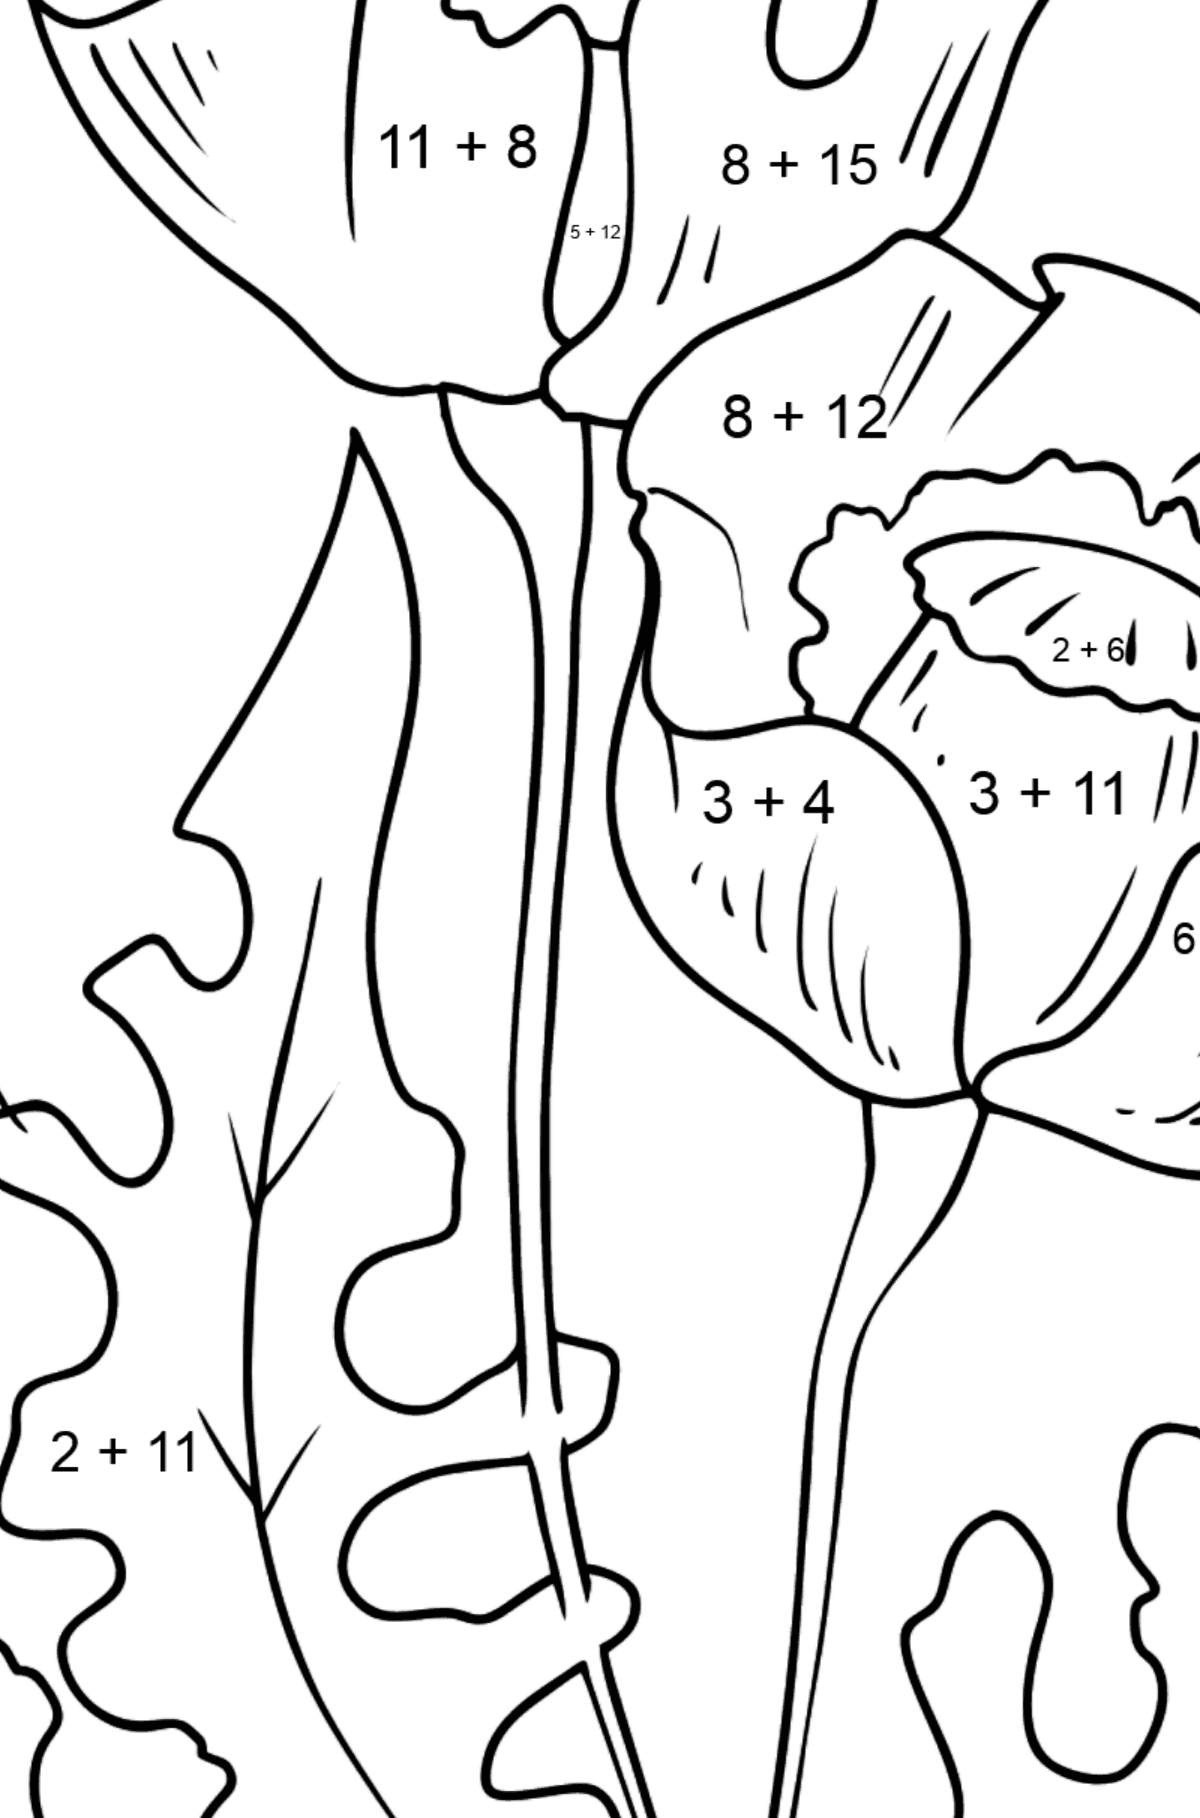 Flower Coloring Page - Beautiful Poppies - Math Coloring - Addition for Kids